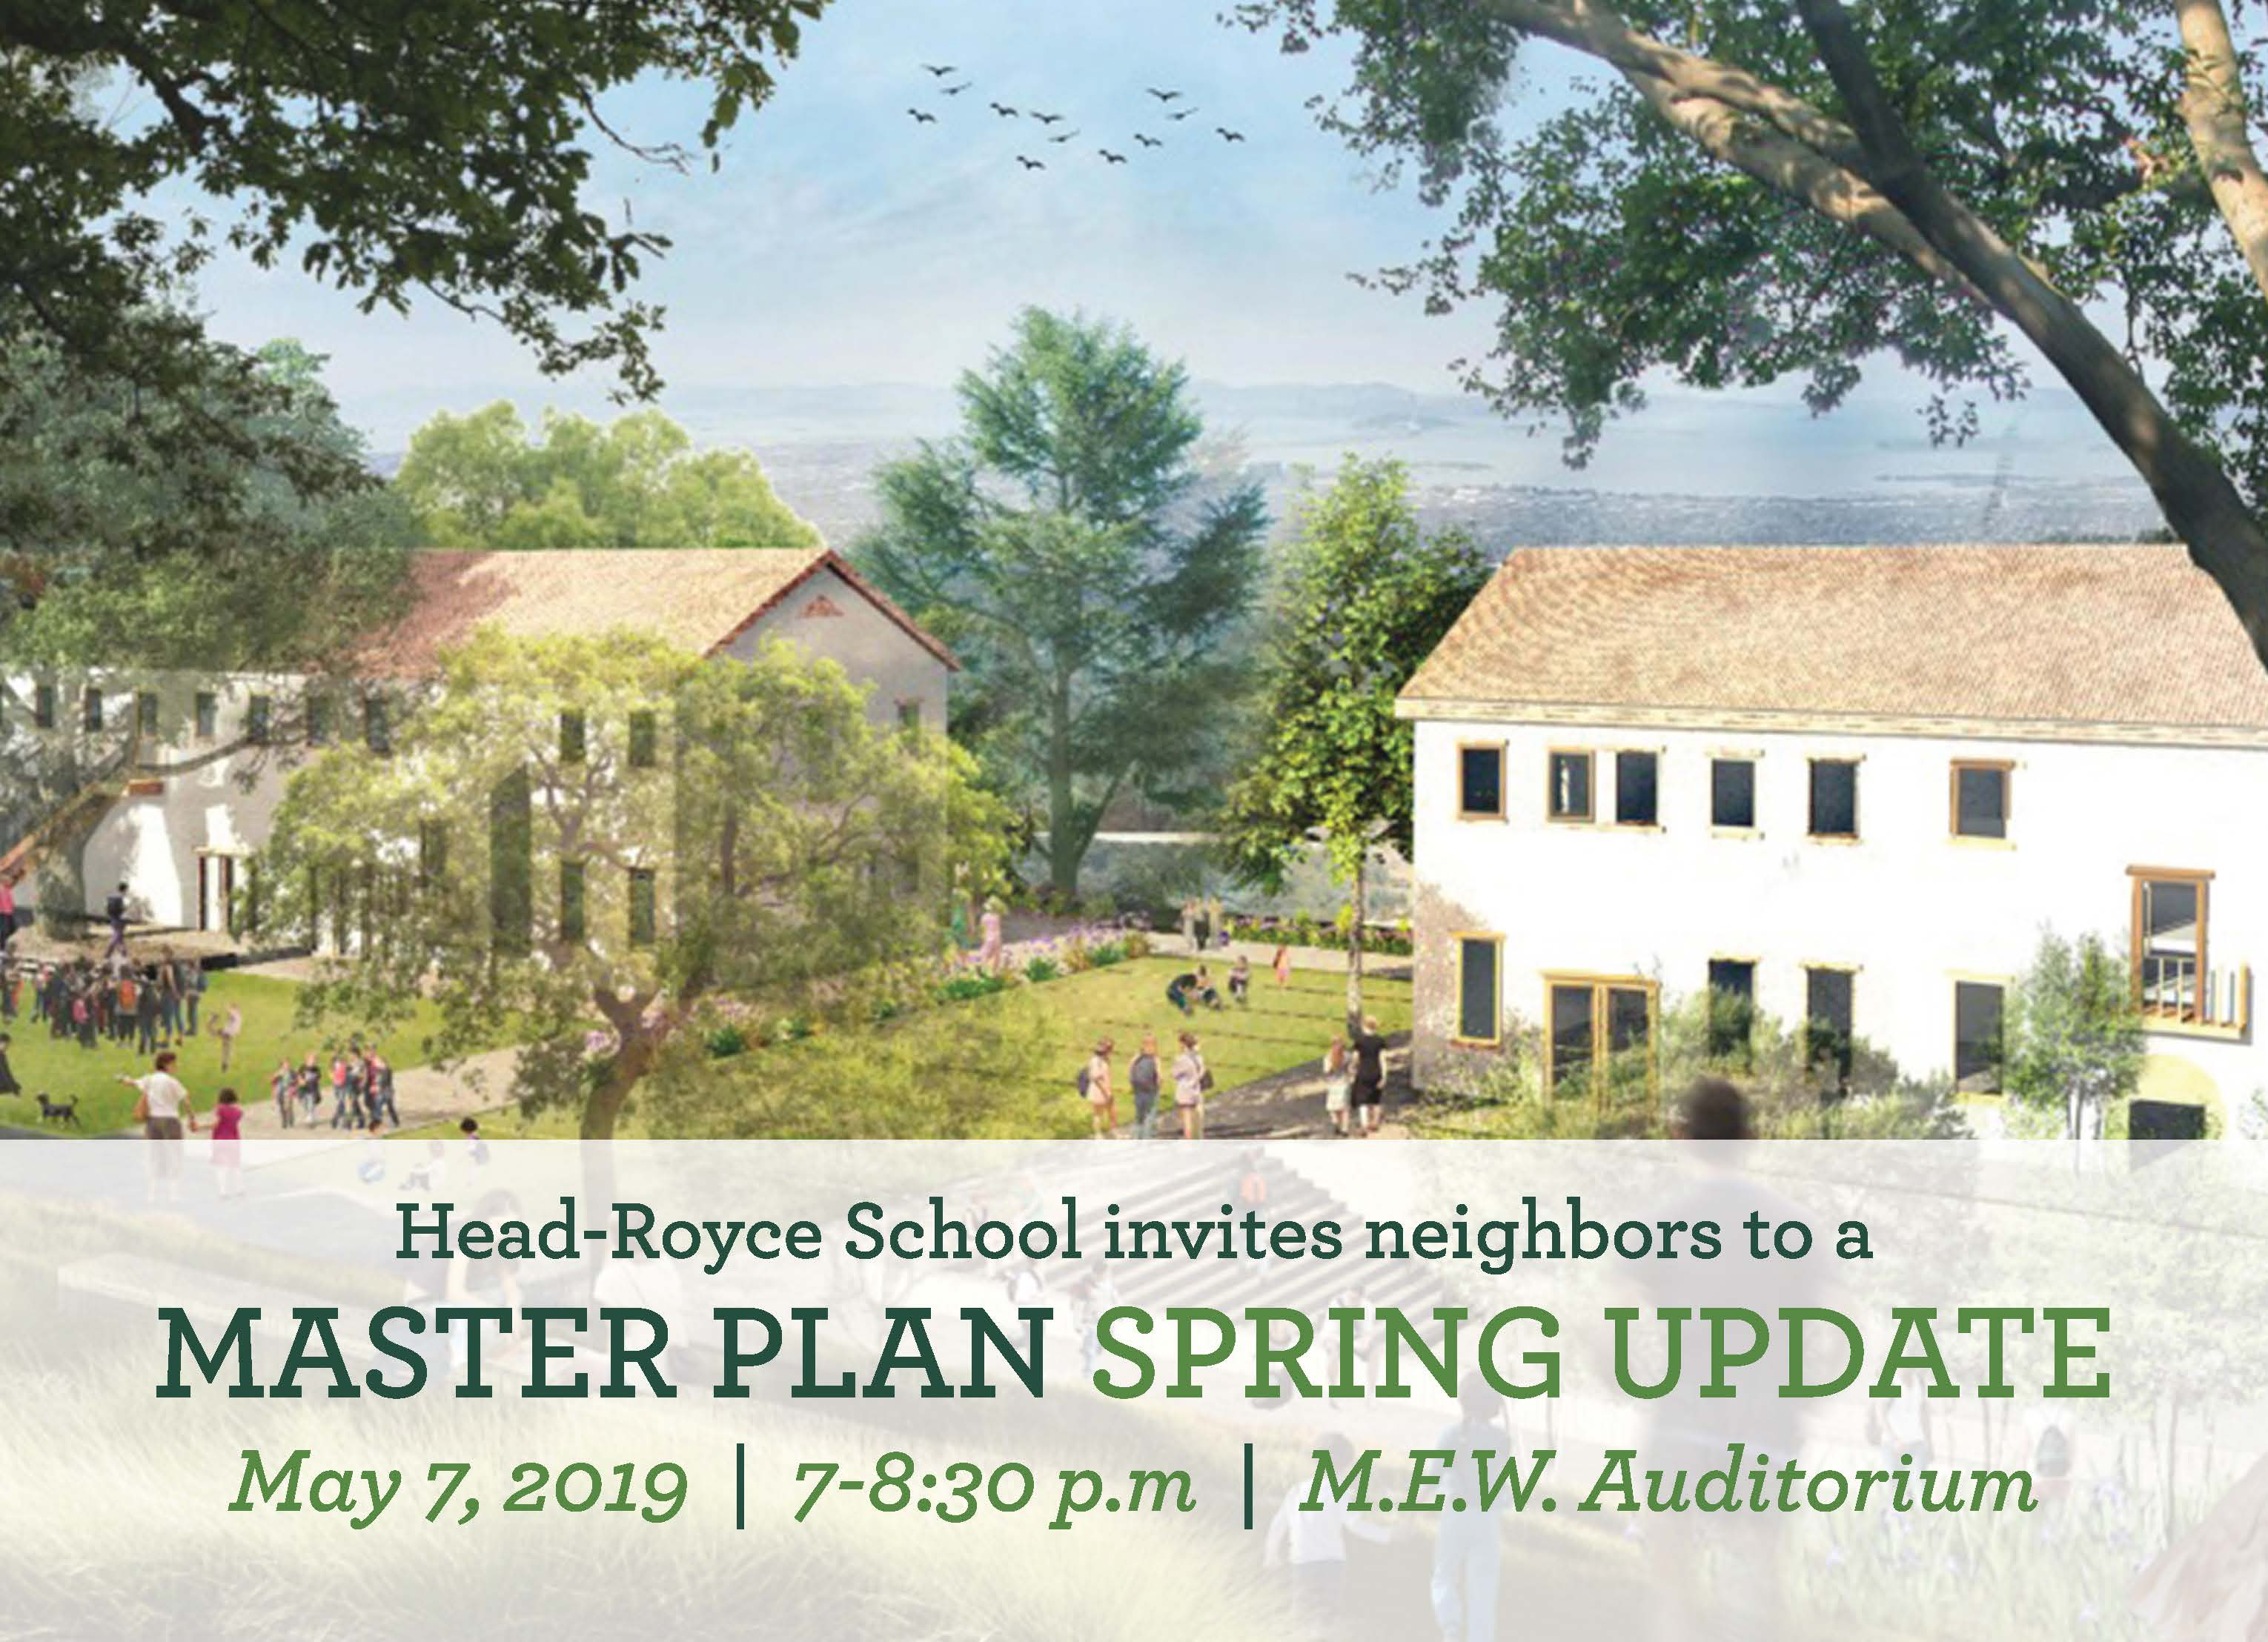 Neighborhood Meeting on May 7: Master Plan Spring Update